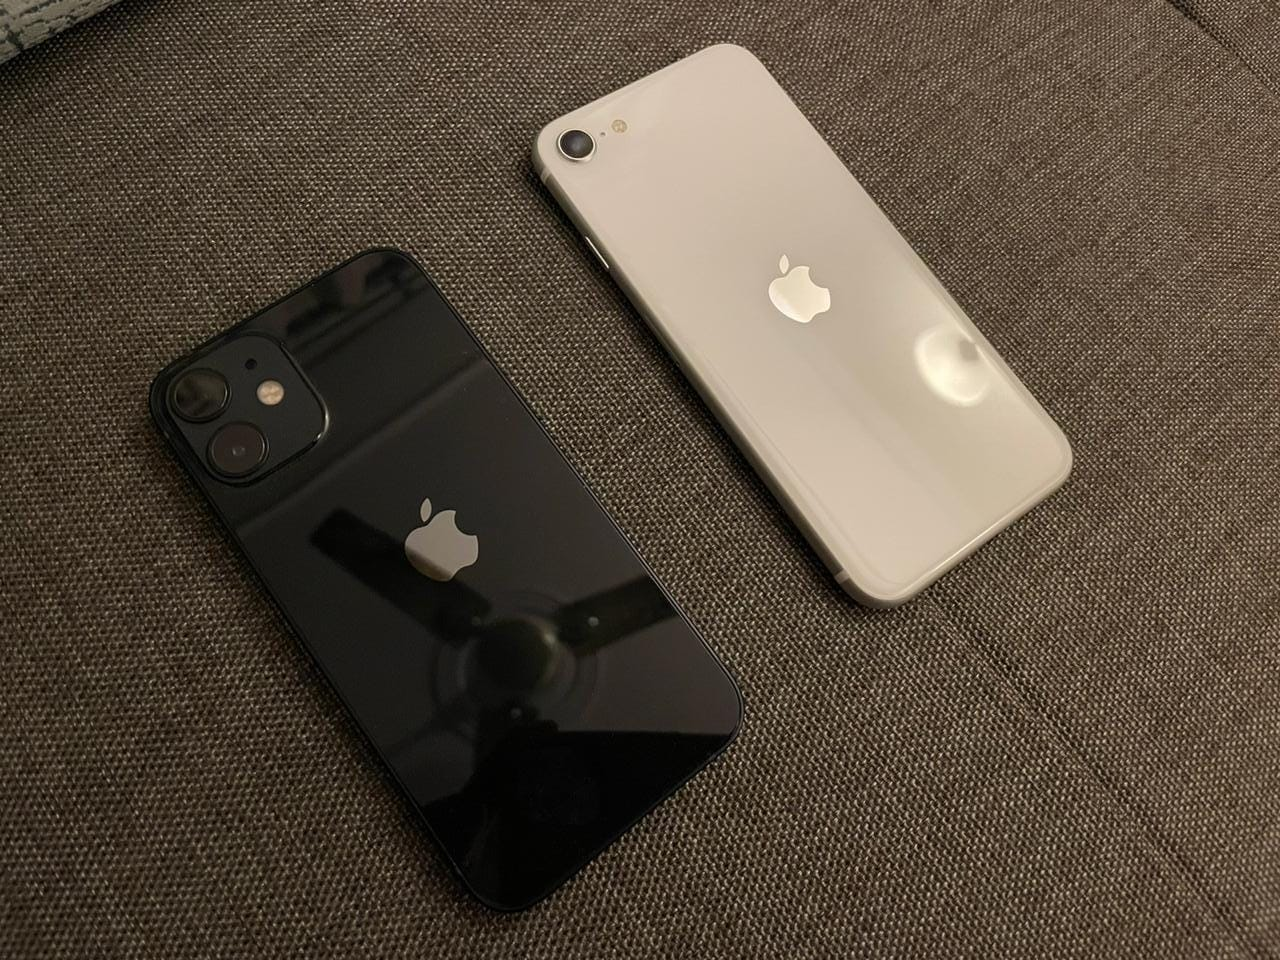 The iPhone 12 mini and the iPhone SE 2020.